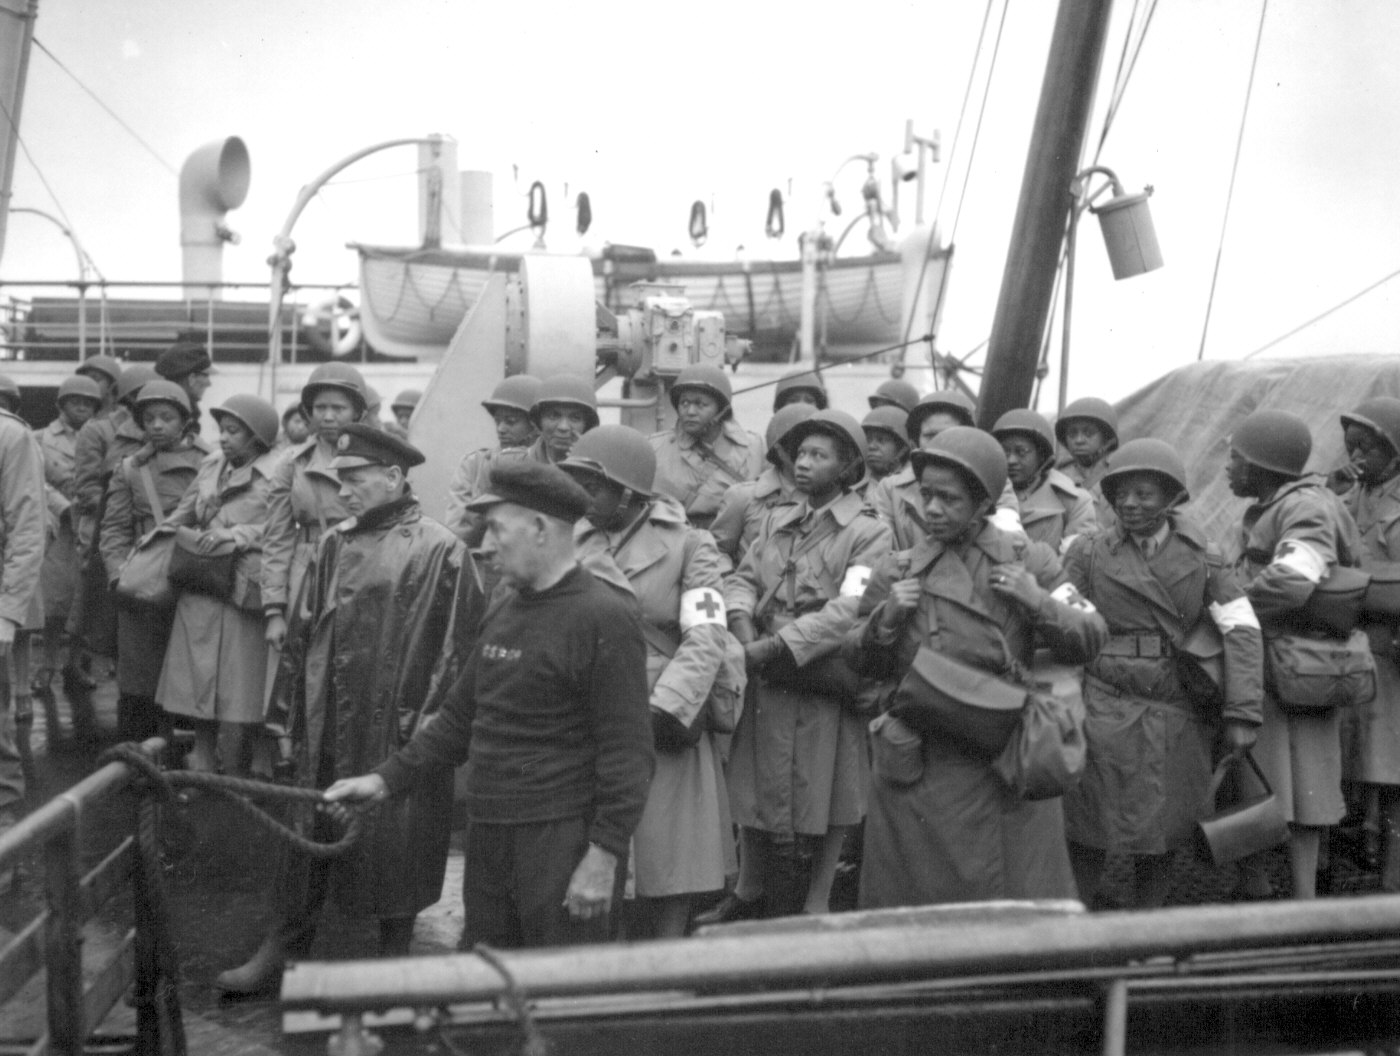 black soldiers in world war ii Over 25 million african-american men registered for the draft, and black women also volunteered in large numbers while serving in the army, army air forces, navy, marine corps, and coast guard, they experienced discrimination and segregation but met the challenge and persevered they served their .